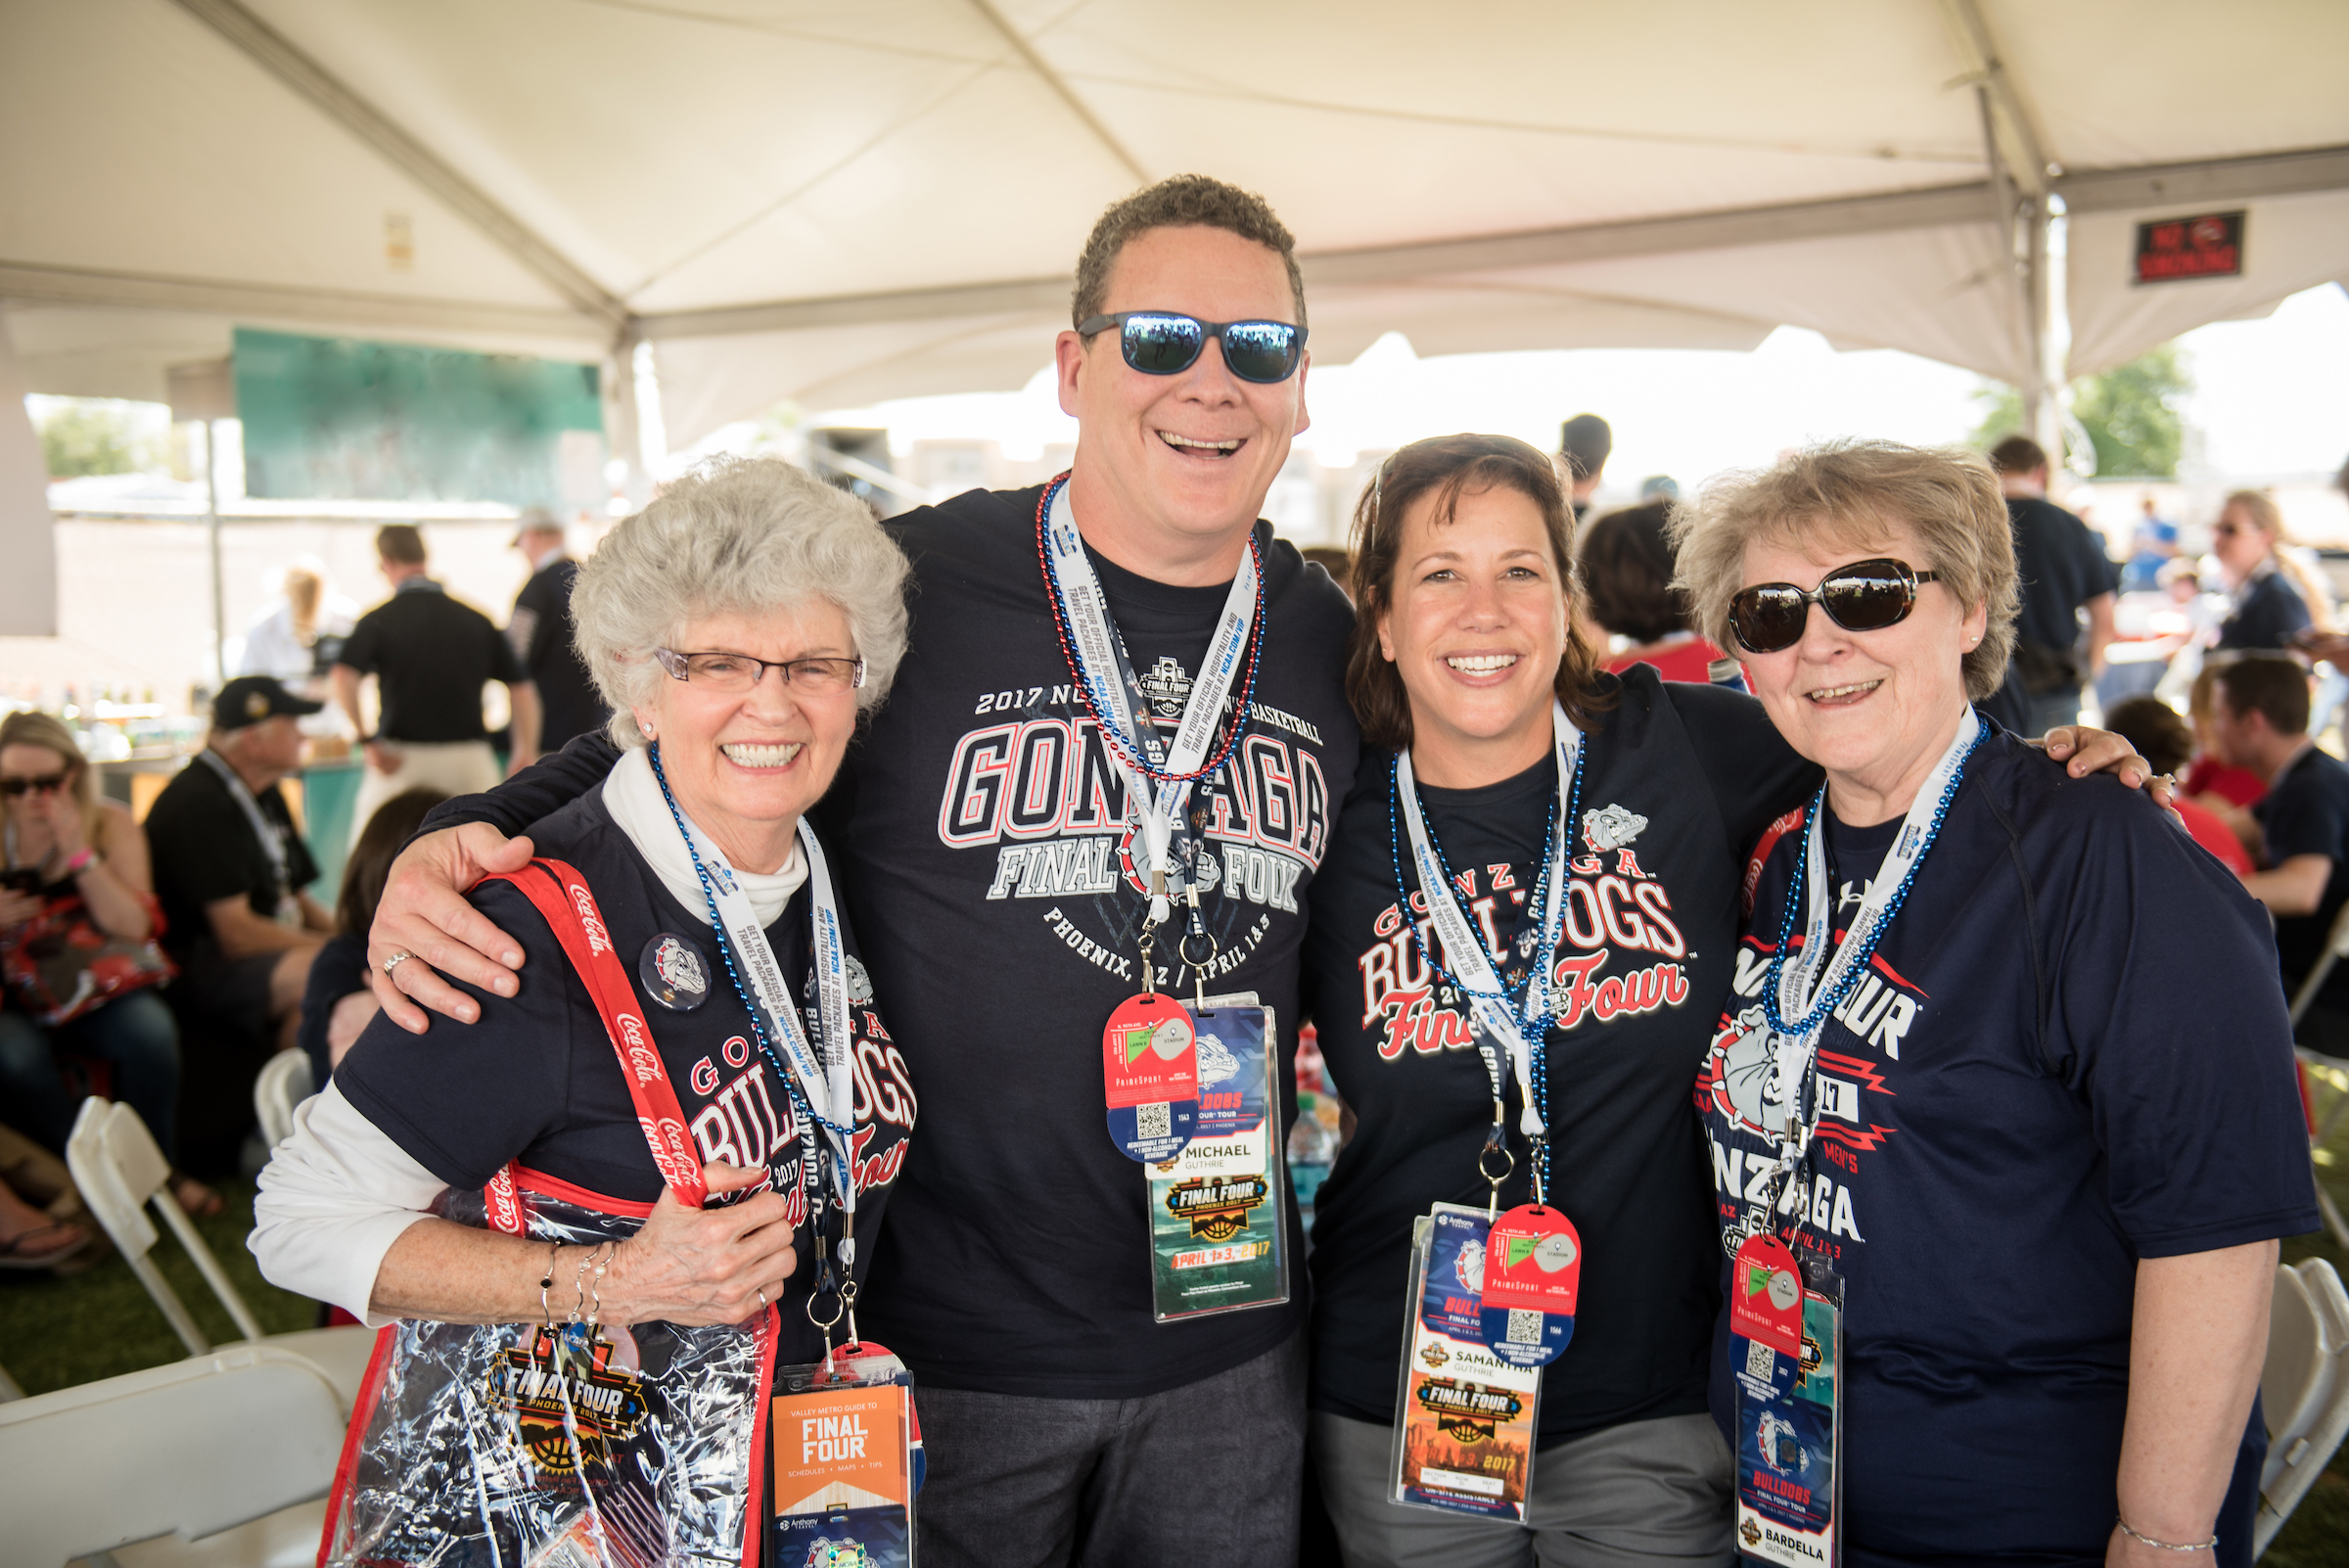 Zag alumni, parents, friends and fans of all generations joined together in Phoenix to celebrate the Gonzaga men's basketball championship appearance in 2017 (photo courtesy of Gonzaga University)